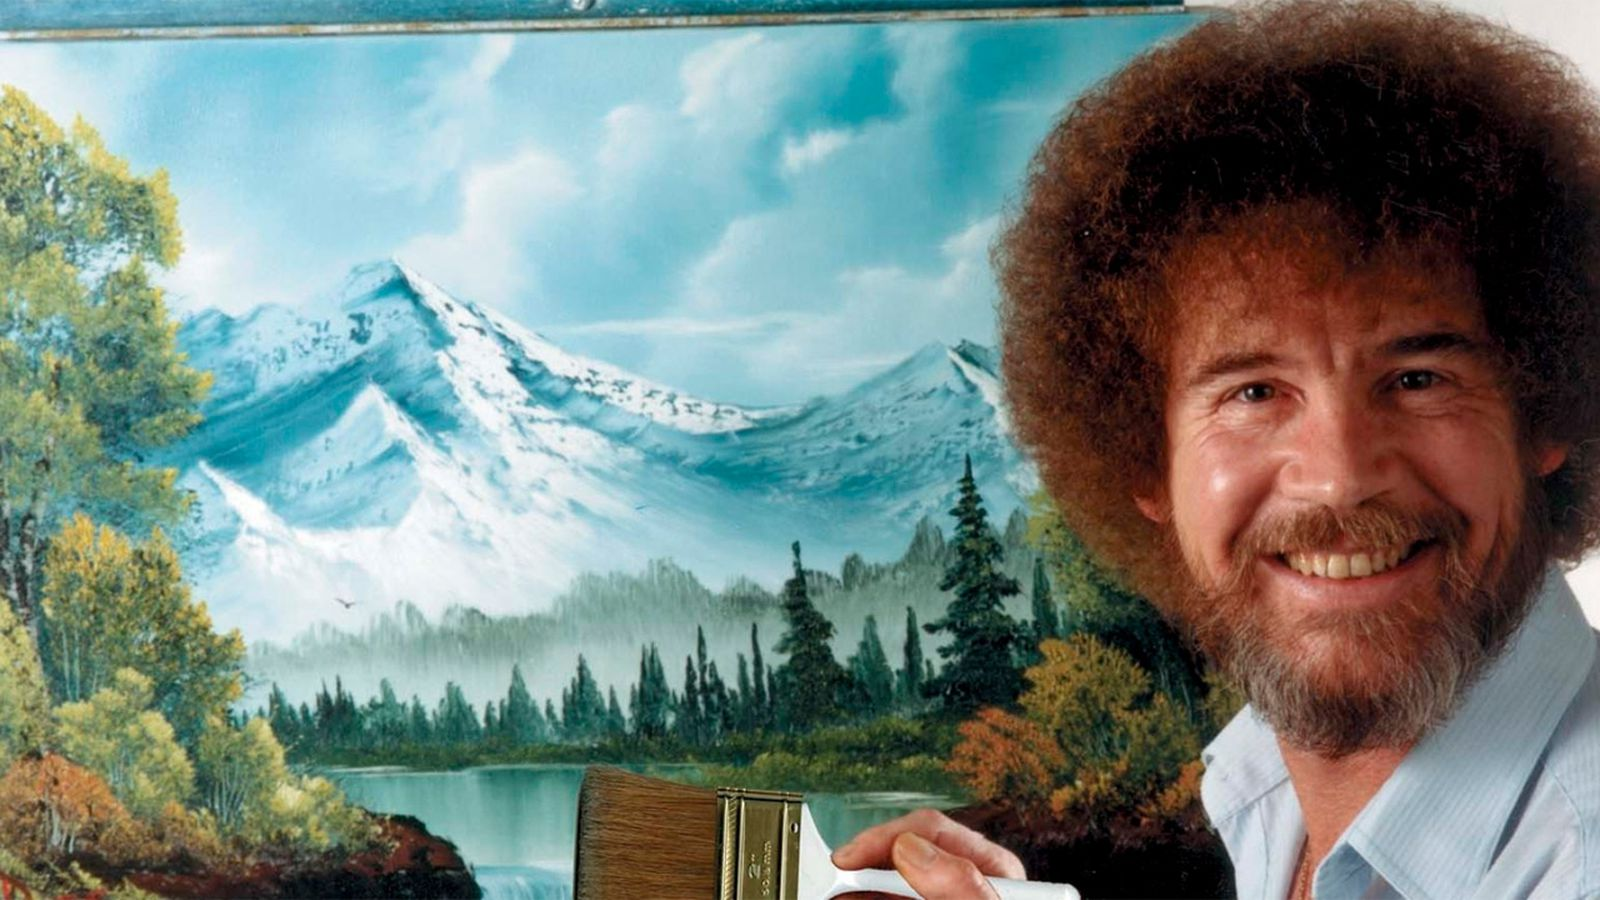 Christian Fall Desktop Wallpaper Twitch Bringing Bob Ross The Joy Of Painting Back Every